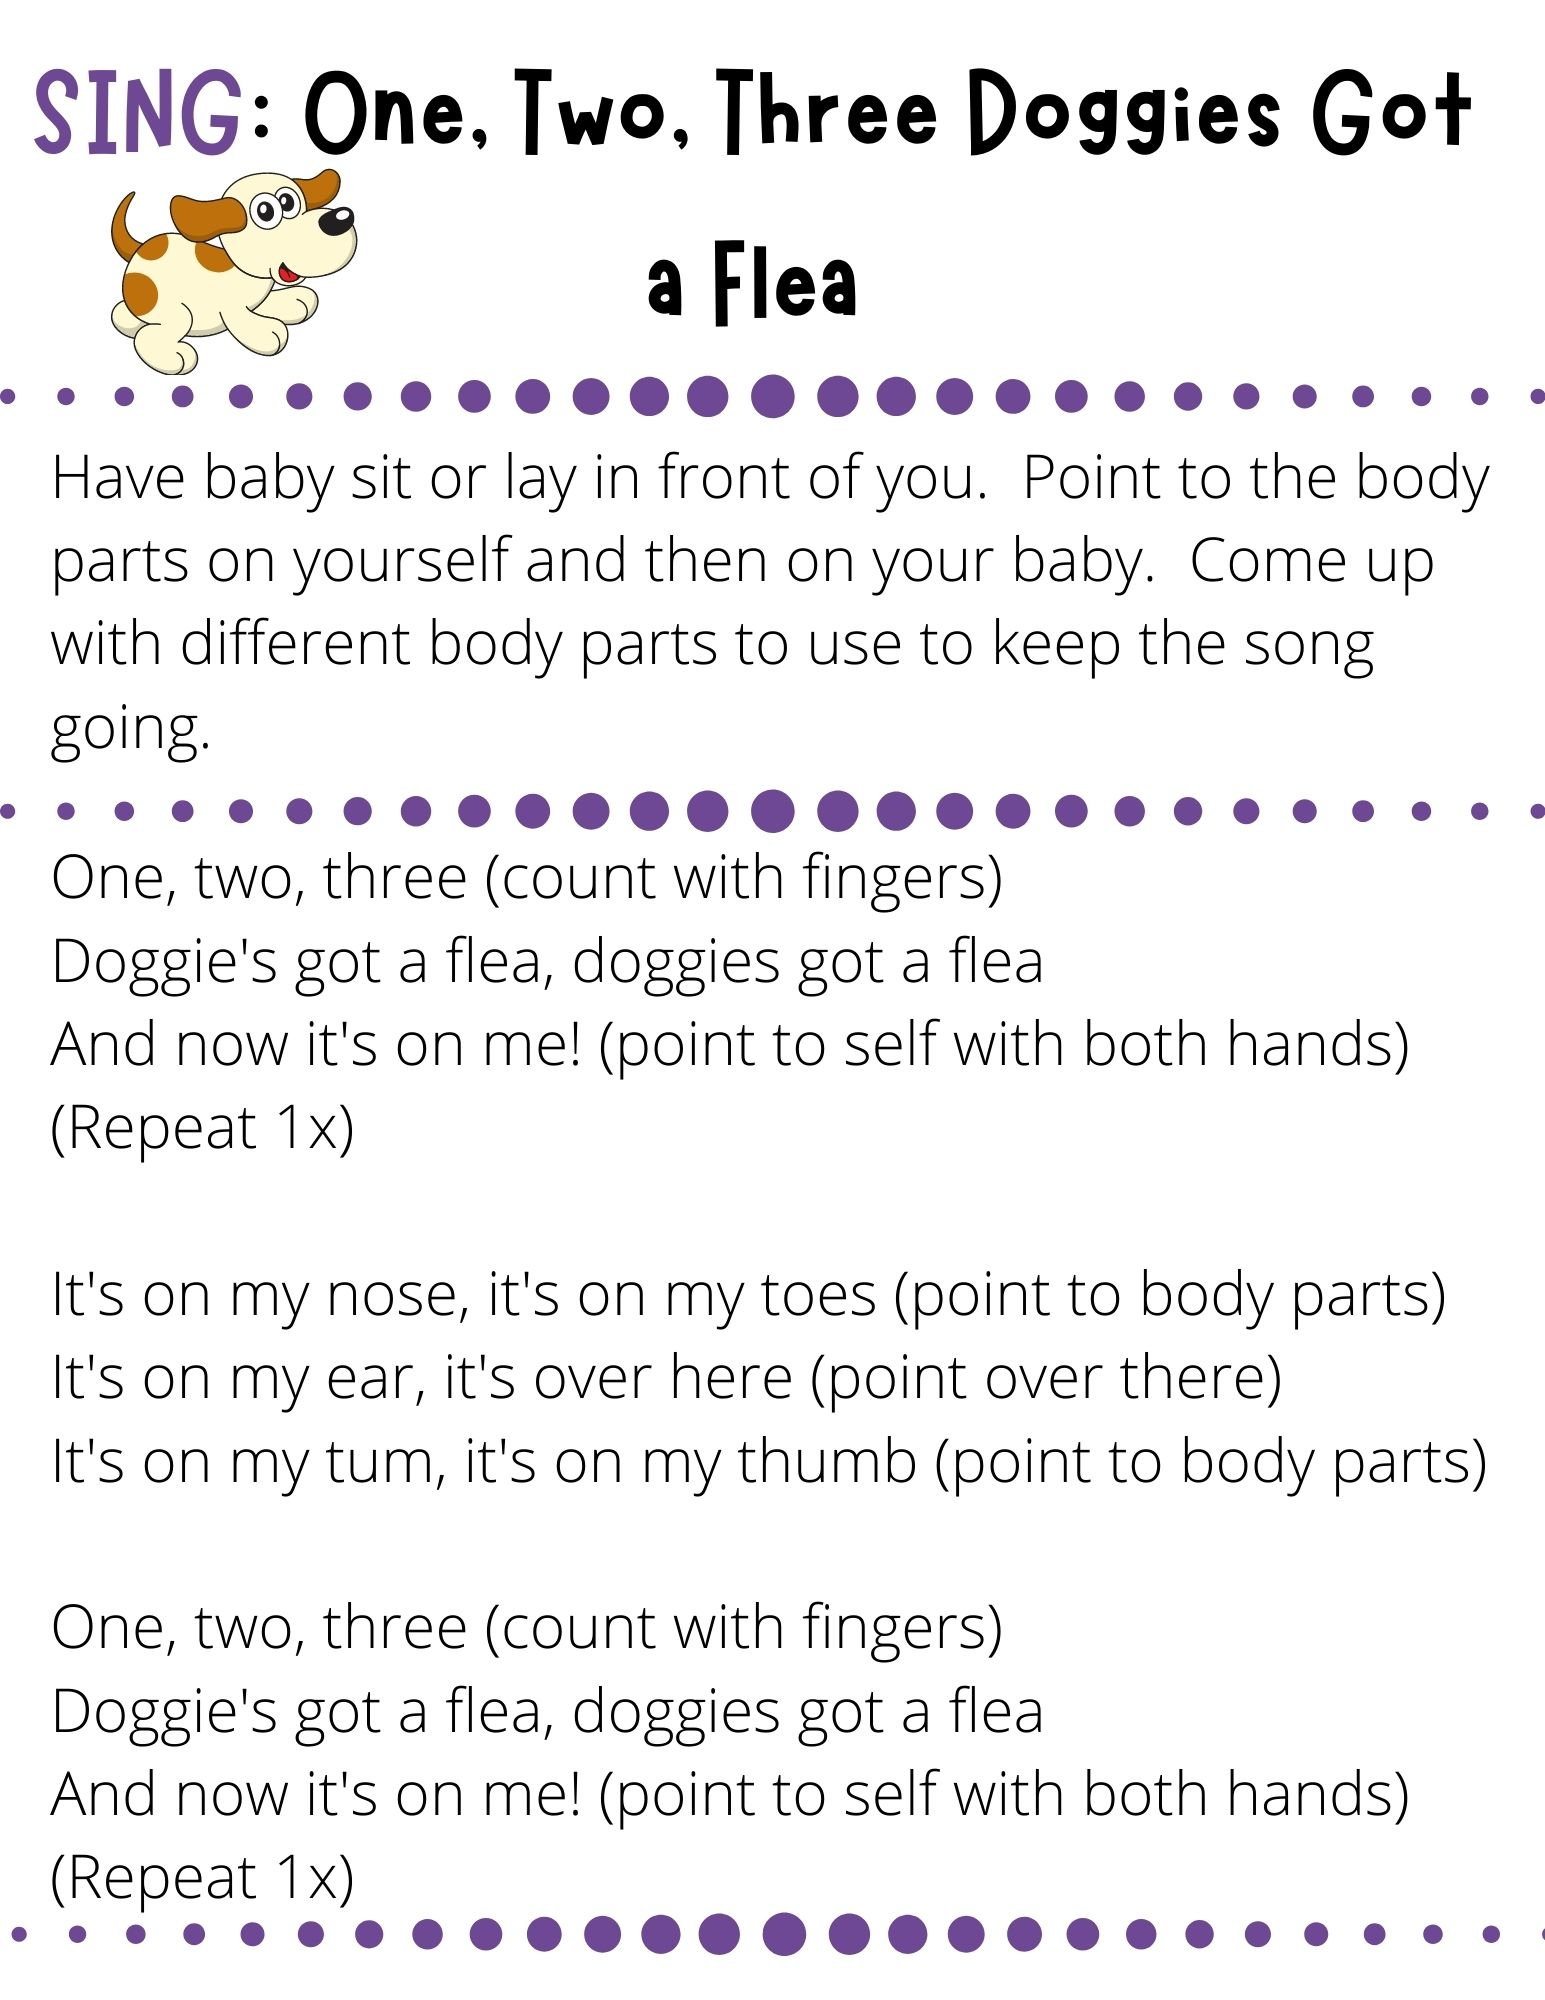 One, two, three (count with fingers) Doggie's got a flea, doggies got a flea  And now it's on me! (point to self with both hands) (Repeat 1x)  It's on my nose, it's on my toes (point to body parts) It's on my ear, it's over here (point over there) It's on my tum, it's on my thumb (point to body parts)  One, two, three (count with fingers) Doggie's got a flea, doggies got a flea And now it's on me! (point to self with both hands) (Repeat 1x)